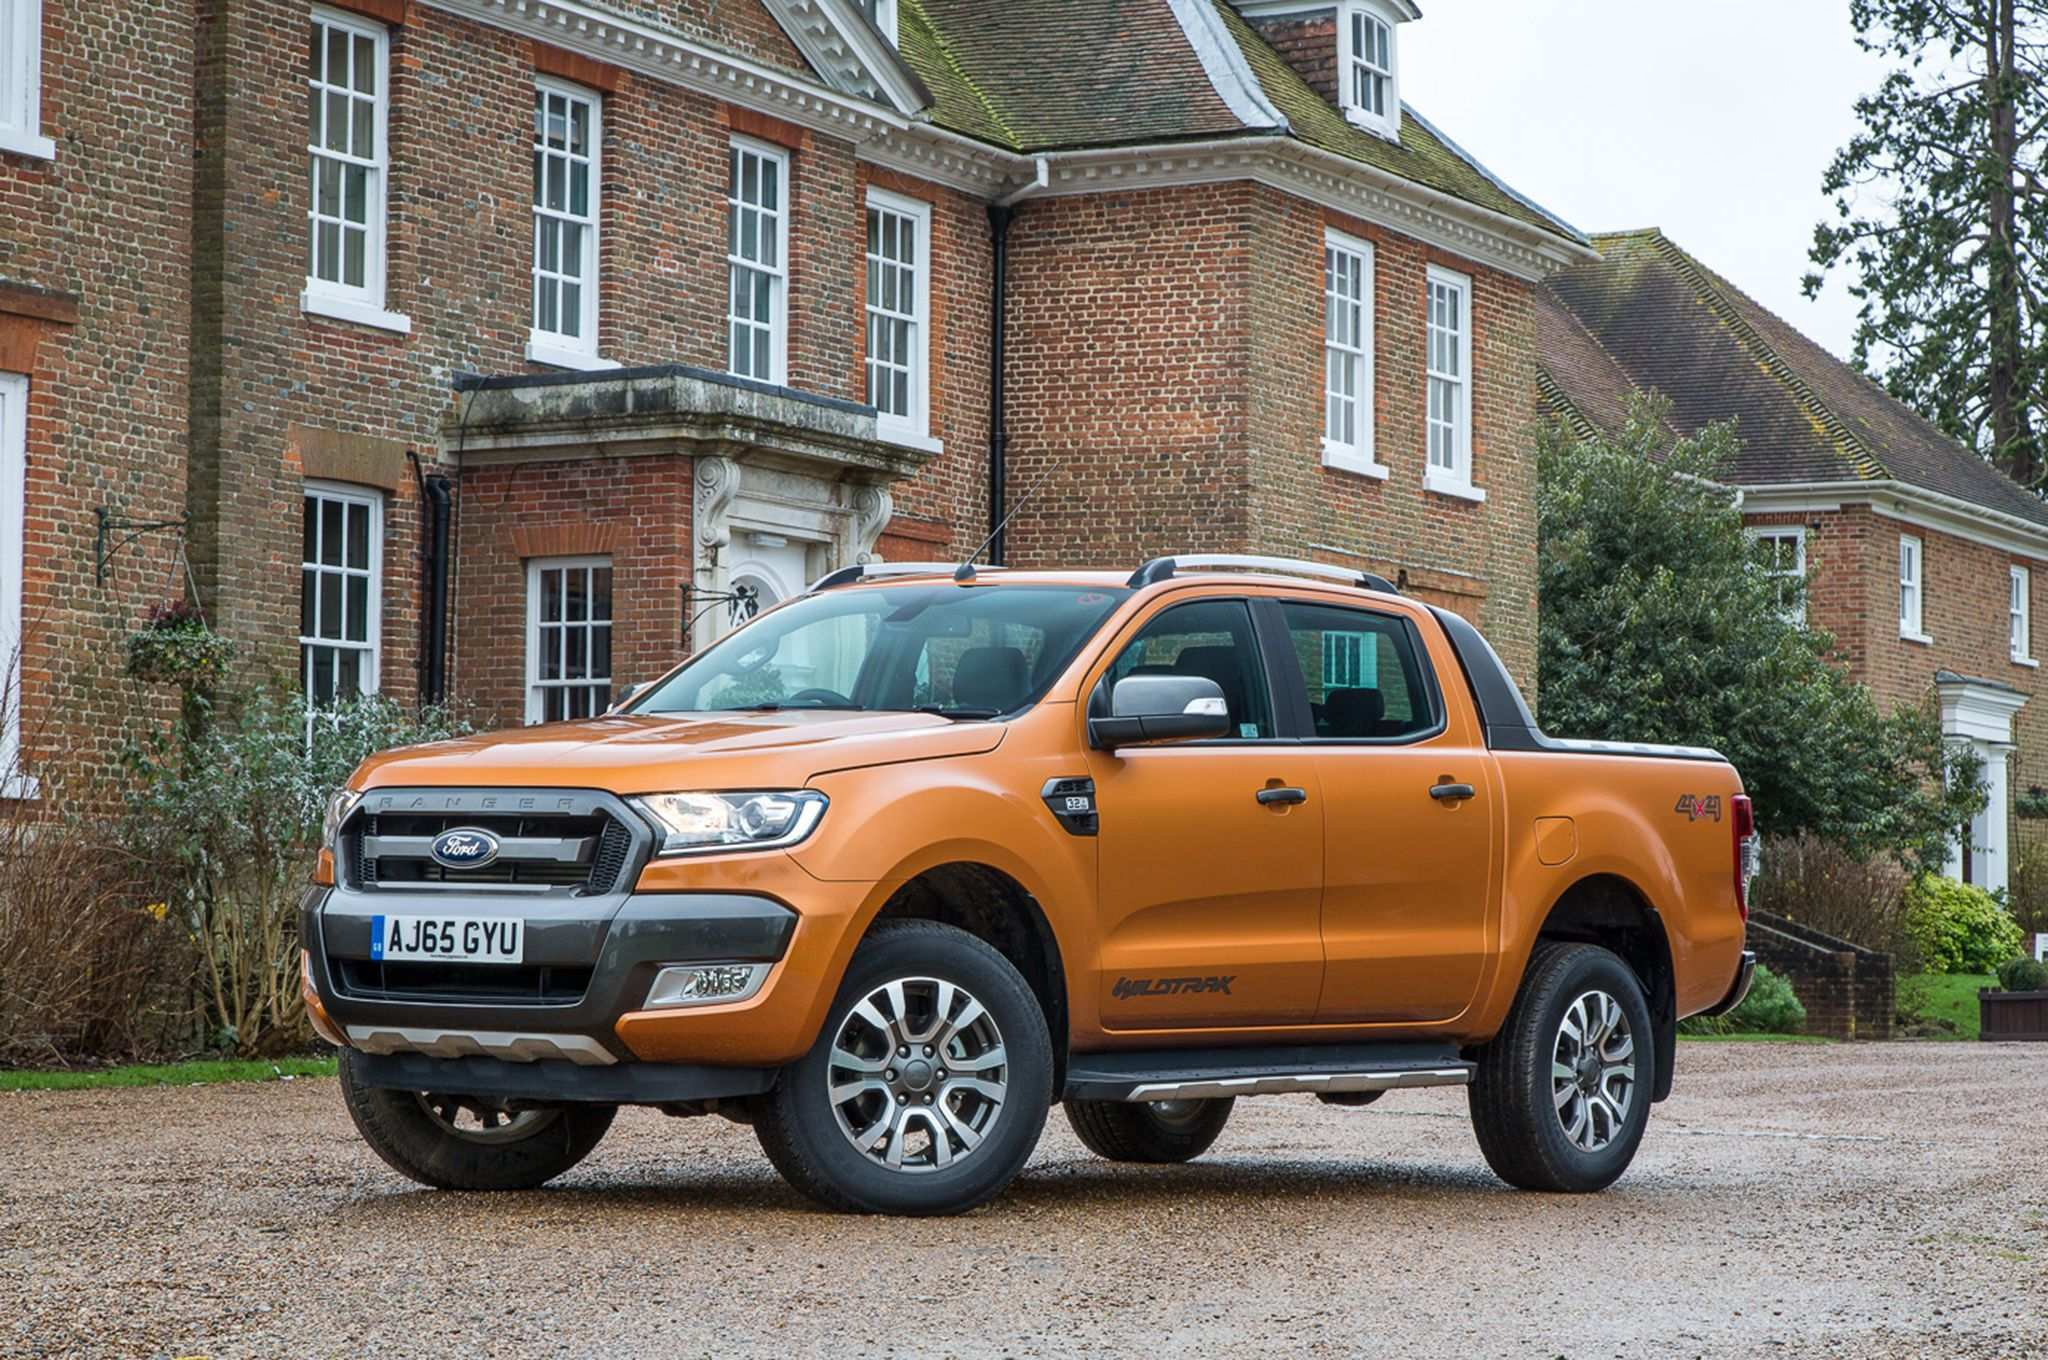 20 All New 2020 Ford Ranger Wildtrak Wallpaper with 2020 Ford Ranger Wildtrak